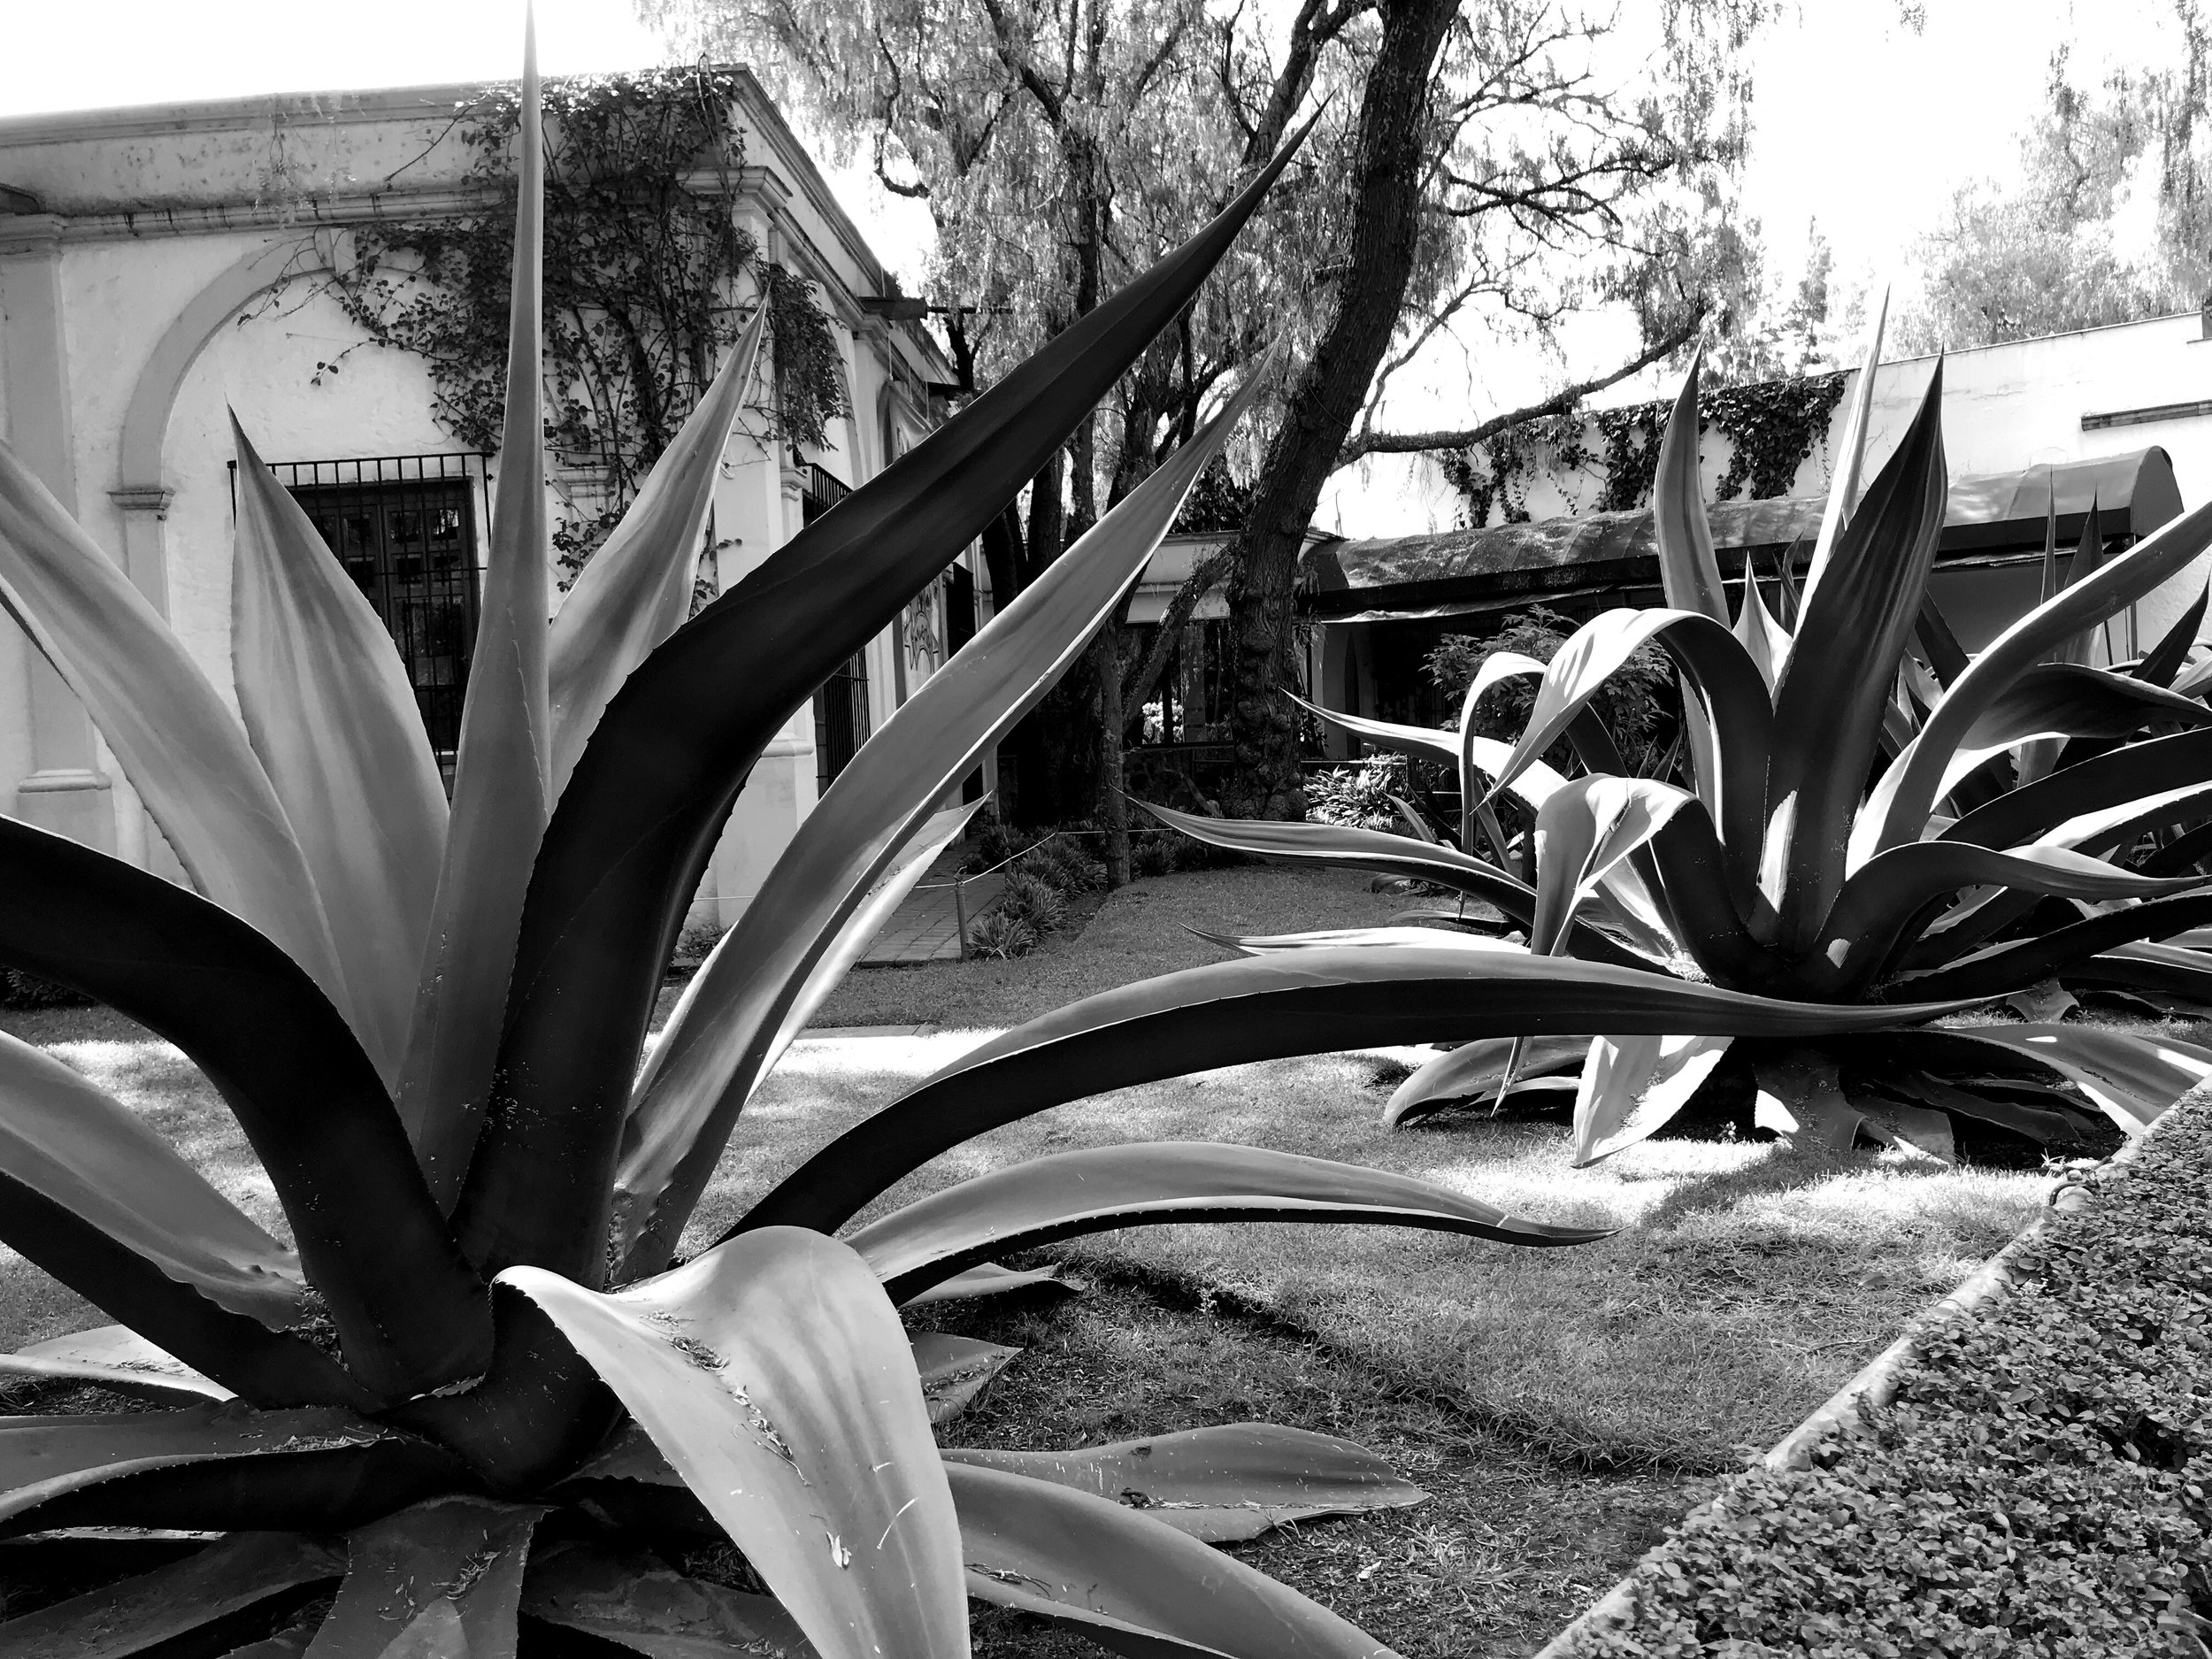 Giant blue agaves